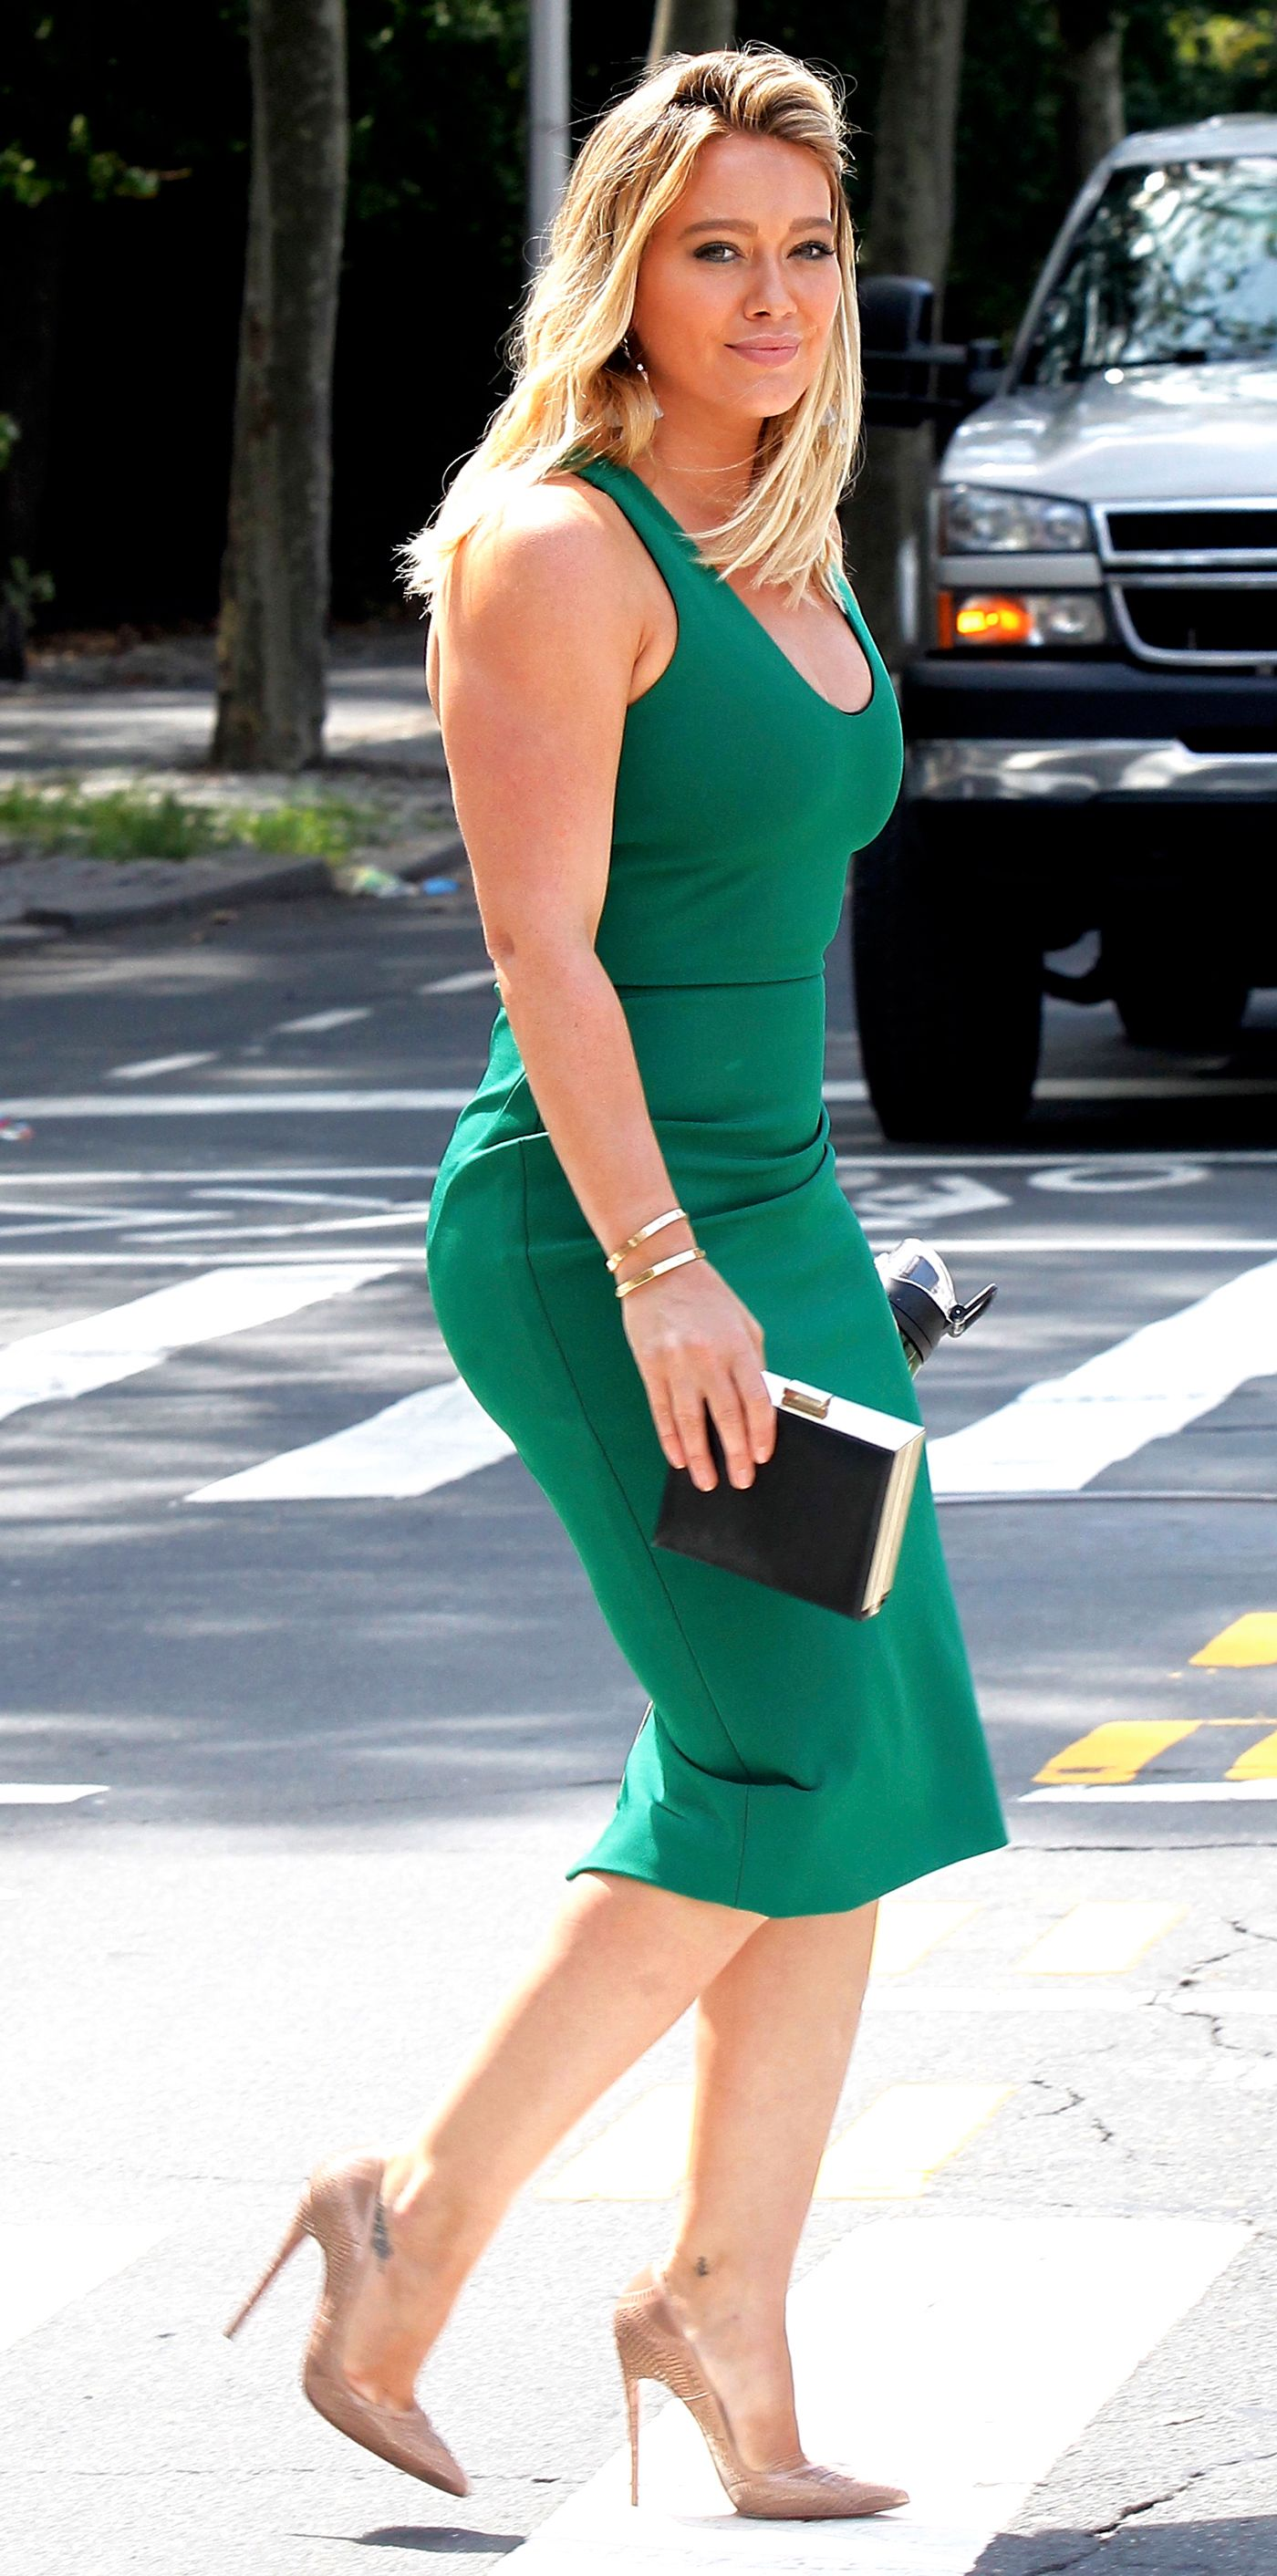 19063e1ba93 Hilary Duff Shows Off Her Curves in a Green